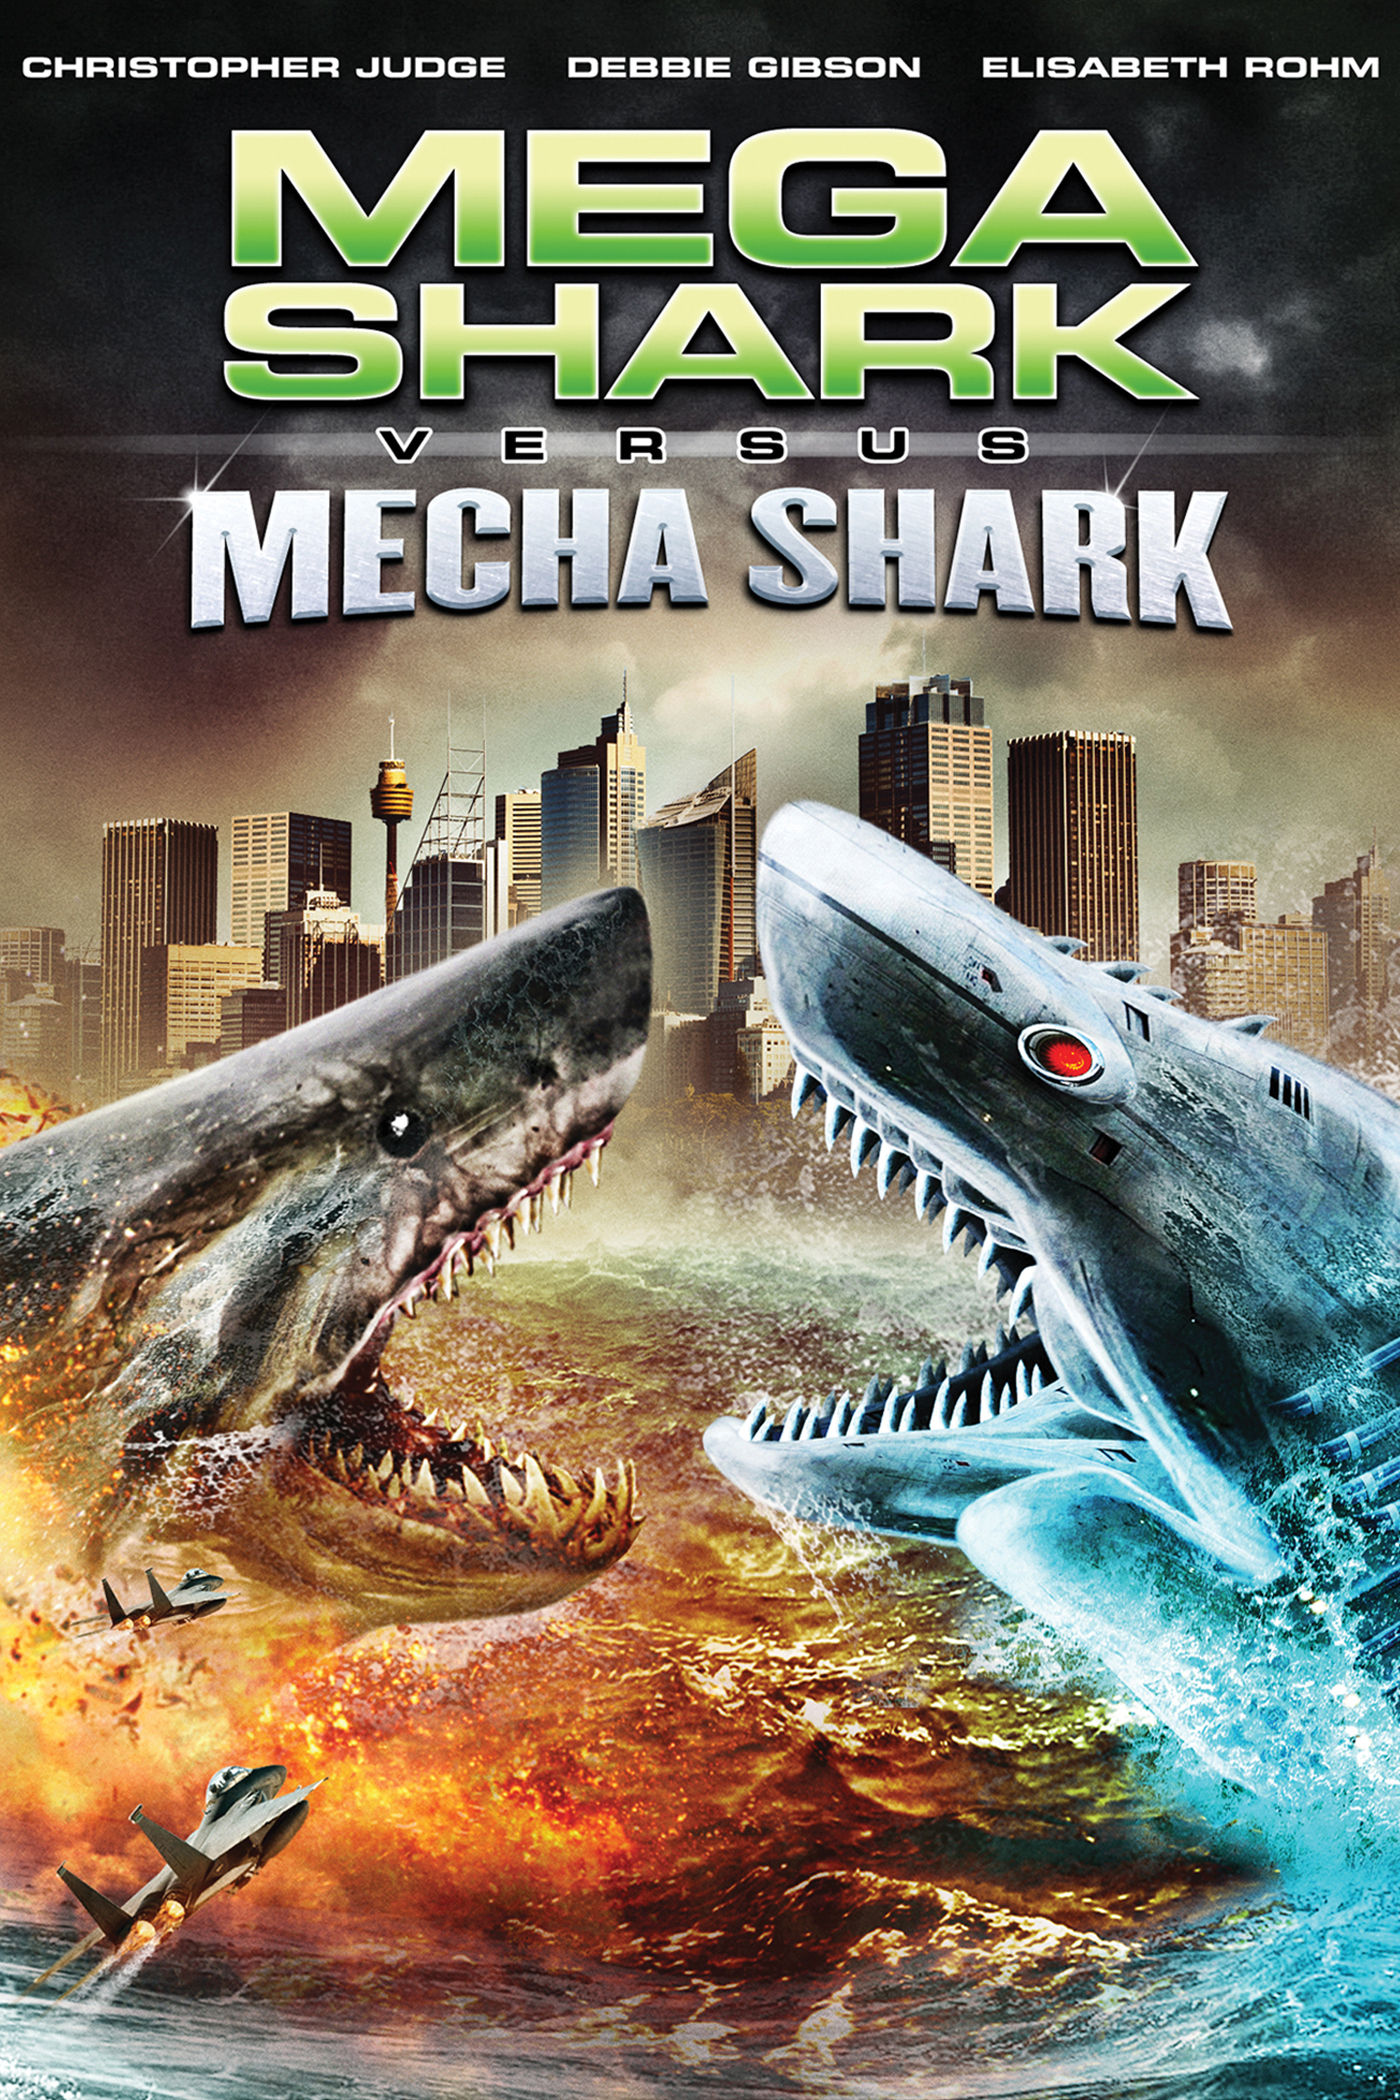 Mega Shark vs Mecha Shark (2014) | Creature Feature Corner